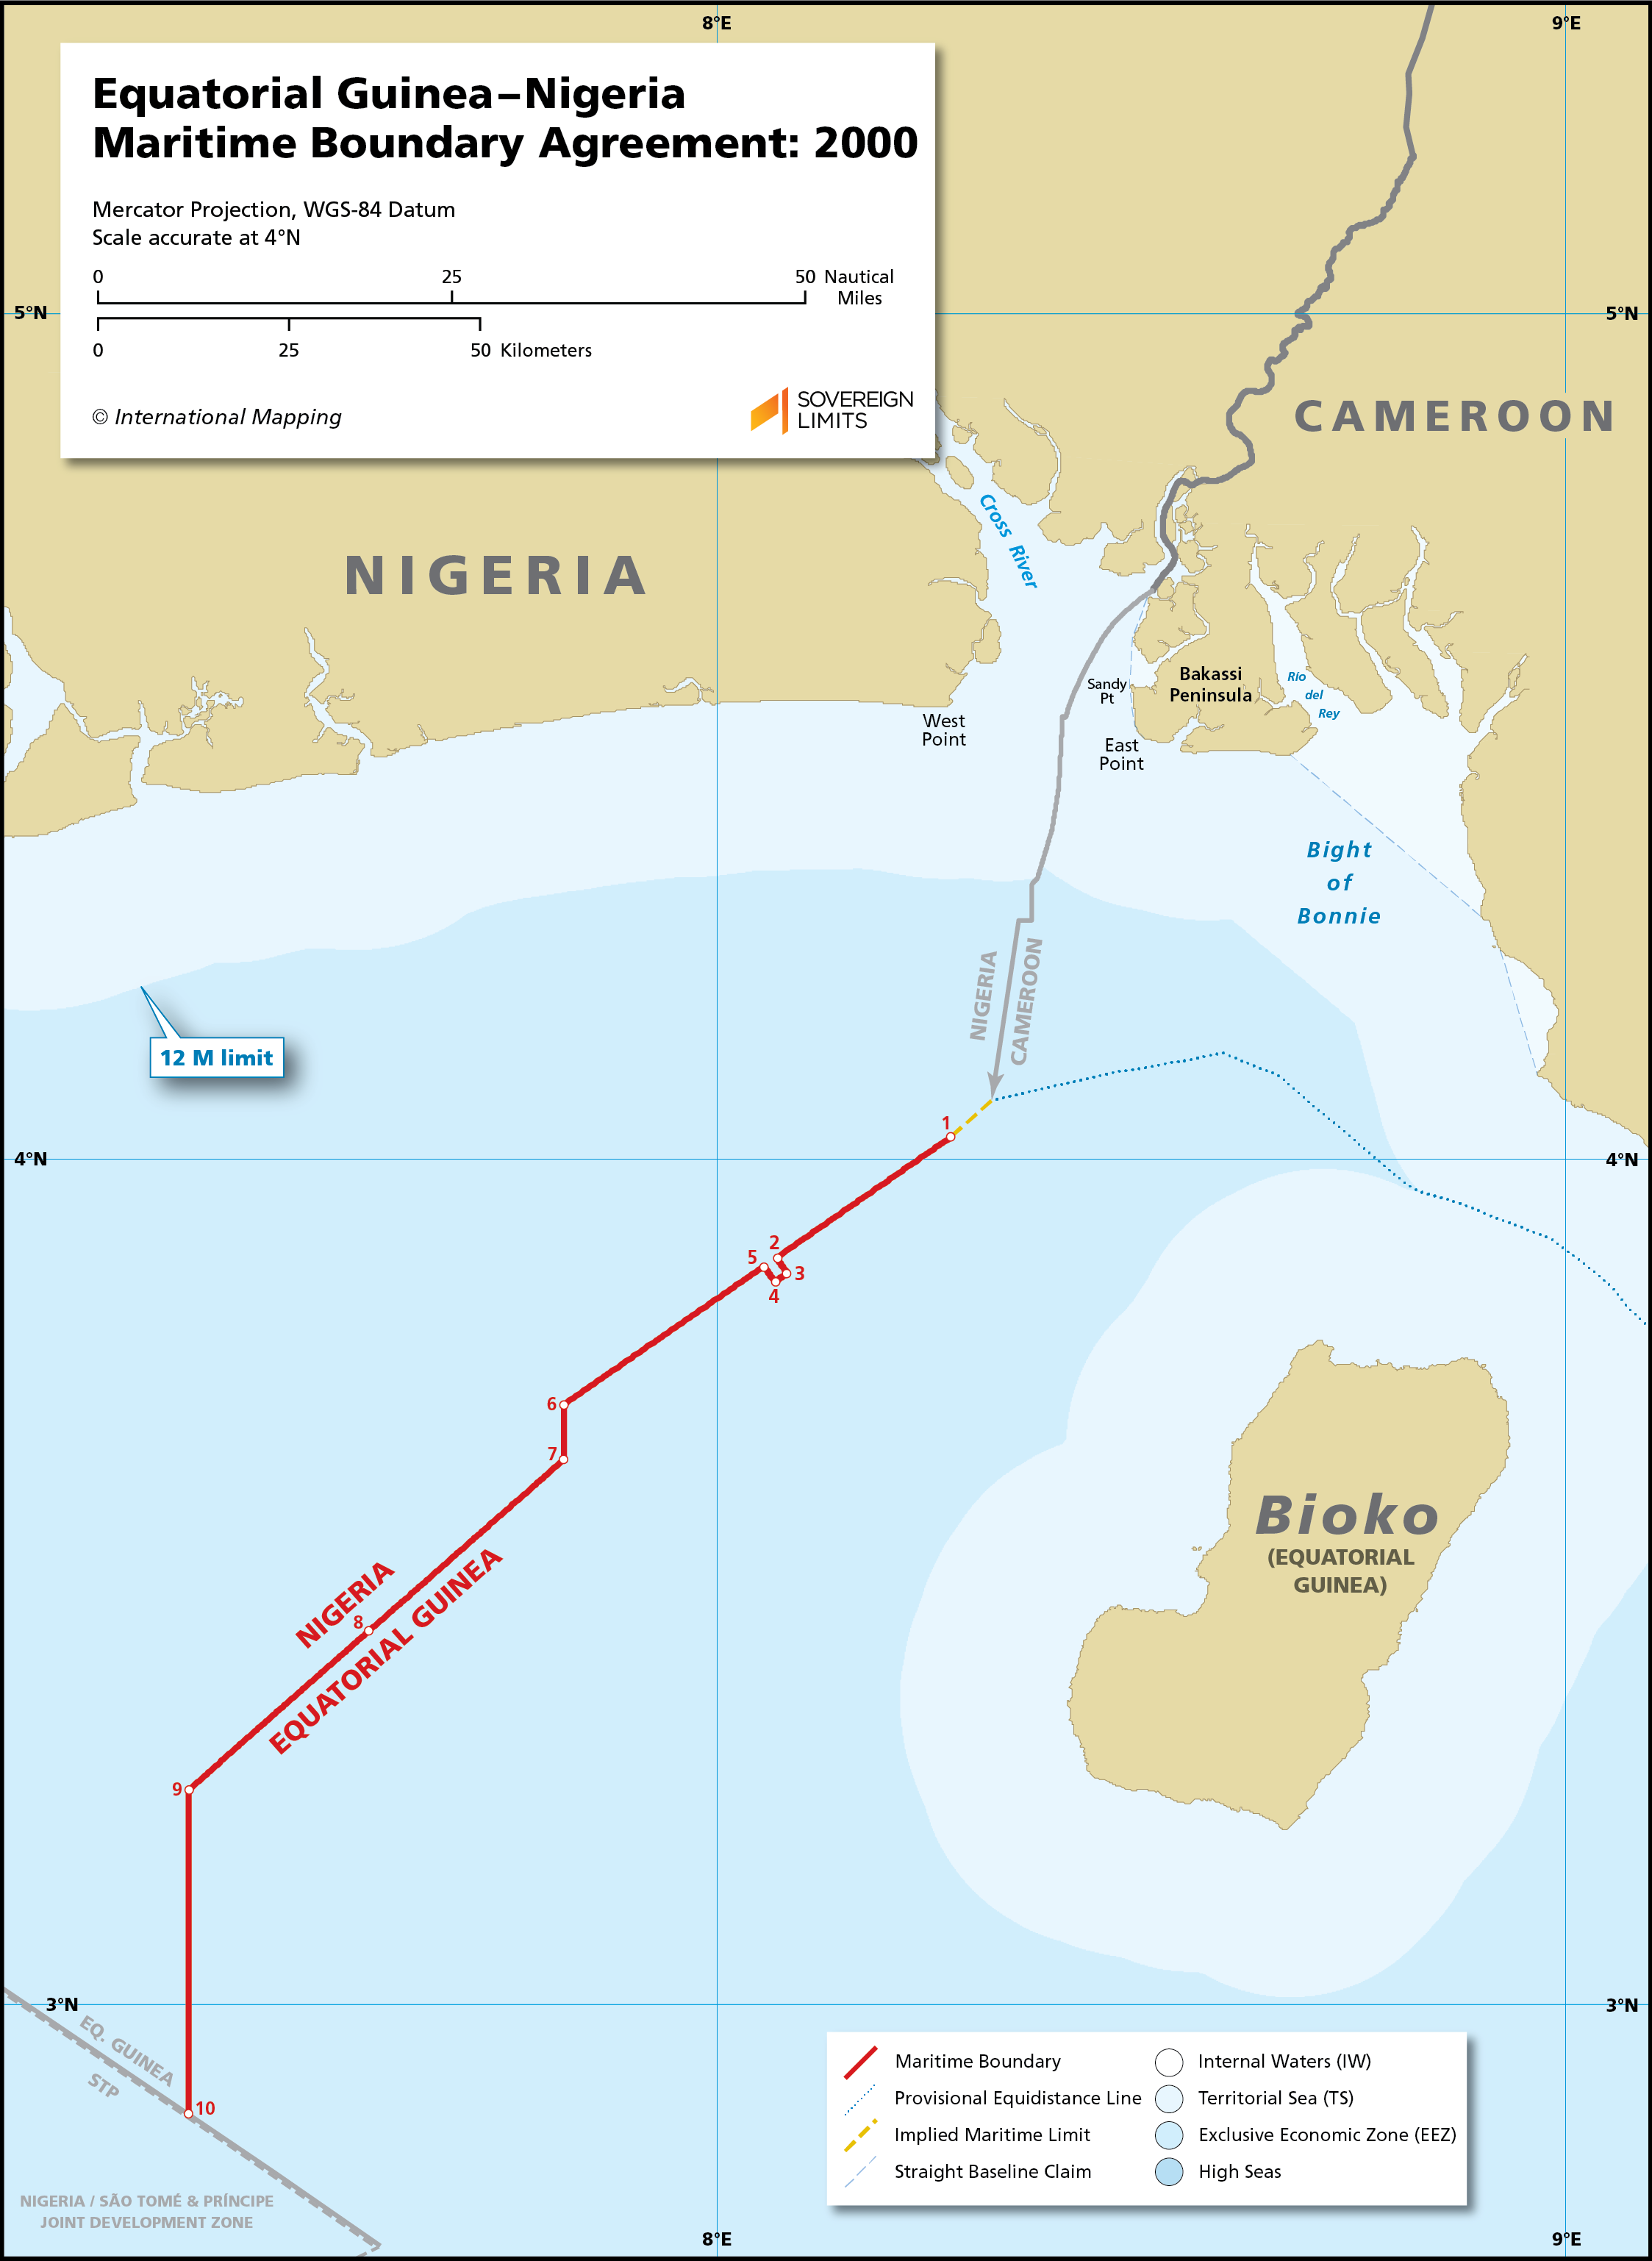 Map showing the maritime boundary between Equatorial Guinea and Nigeria